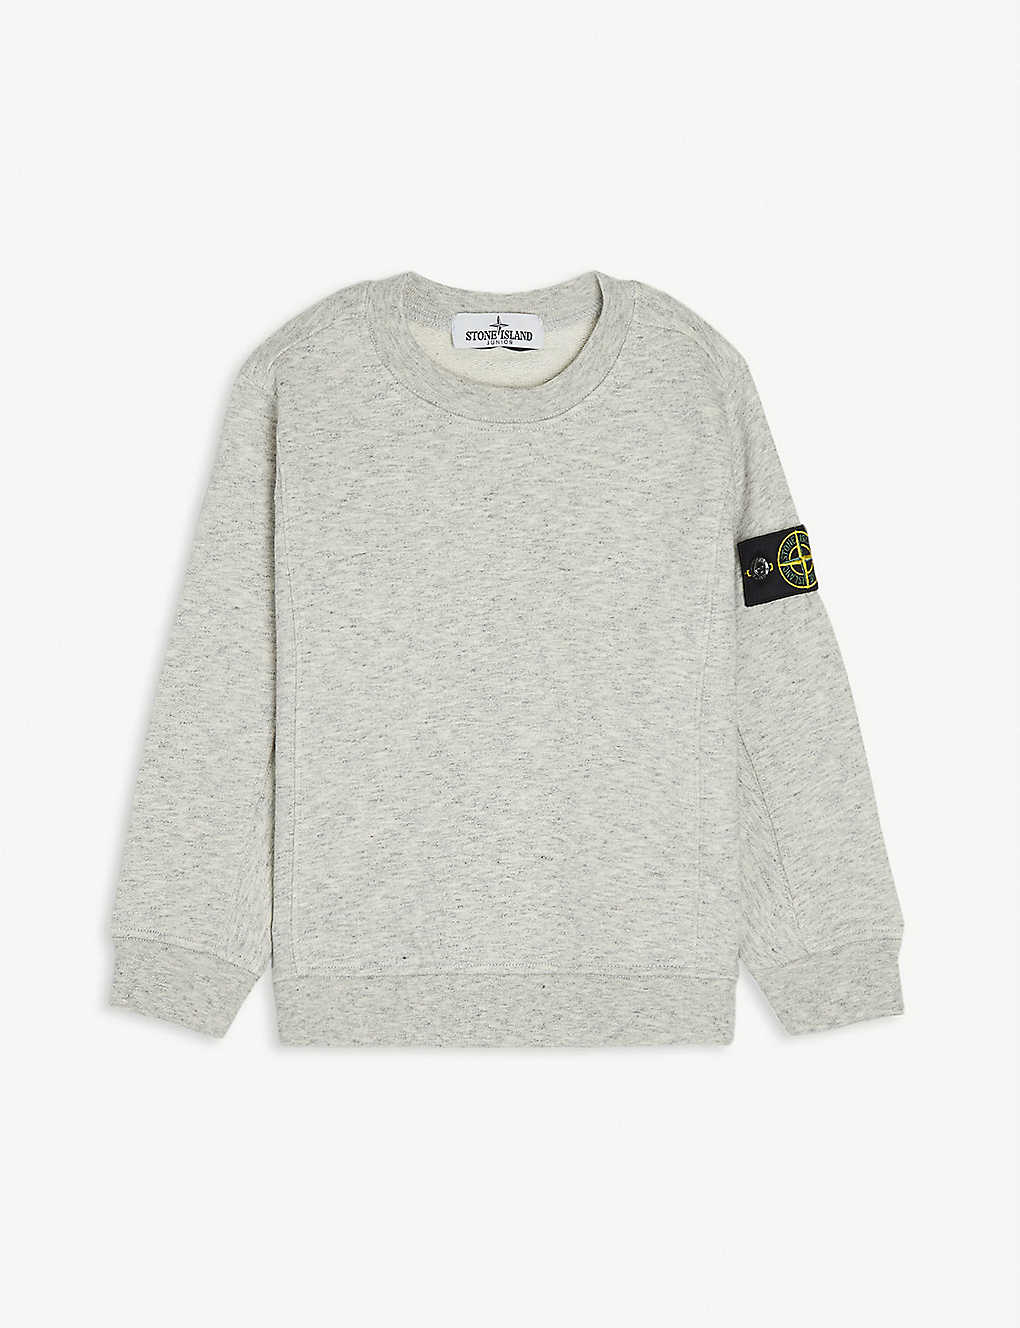 STONE ISLAND: Compass logo marl cotton sweatshirt 4-14 years